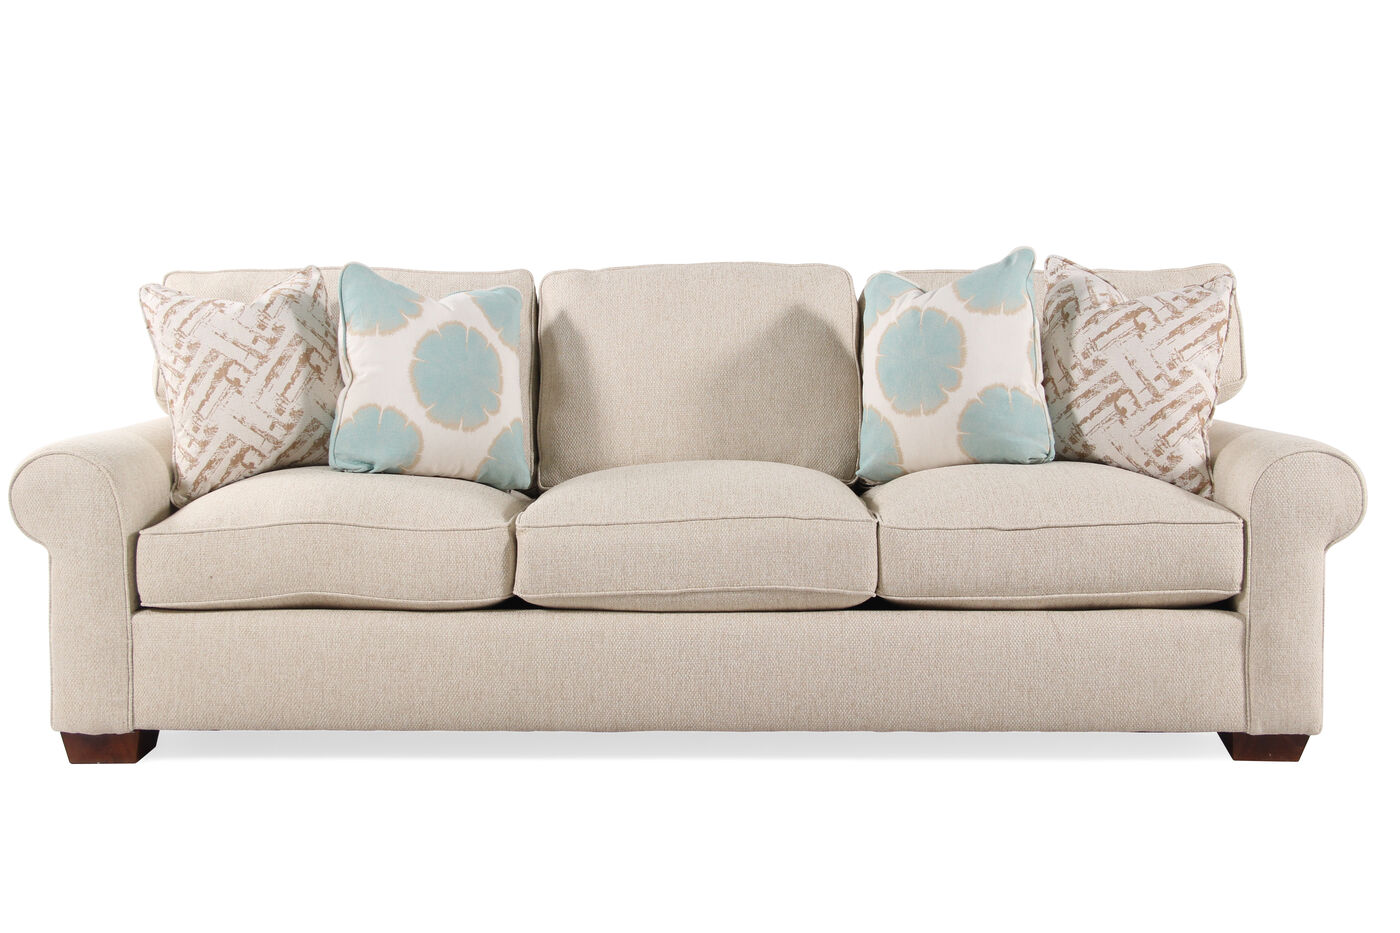 "Transitional Low Profile 103"" Sofa in Cream Mathis Brothers Furniture"